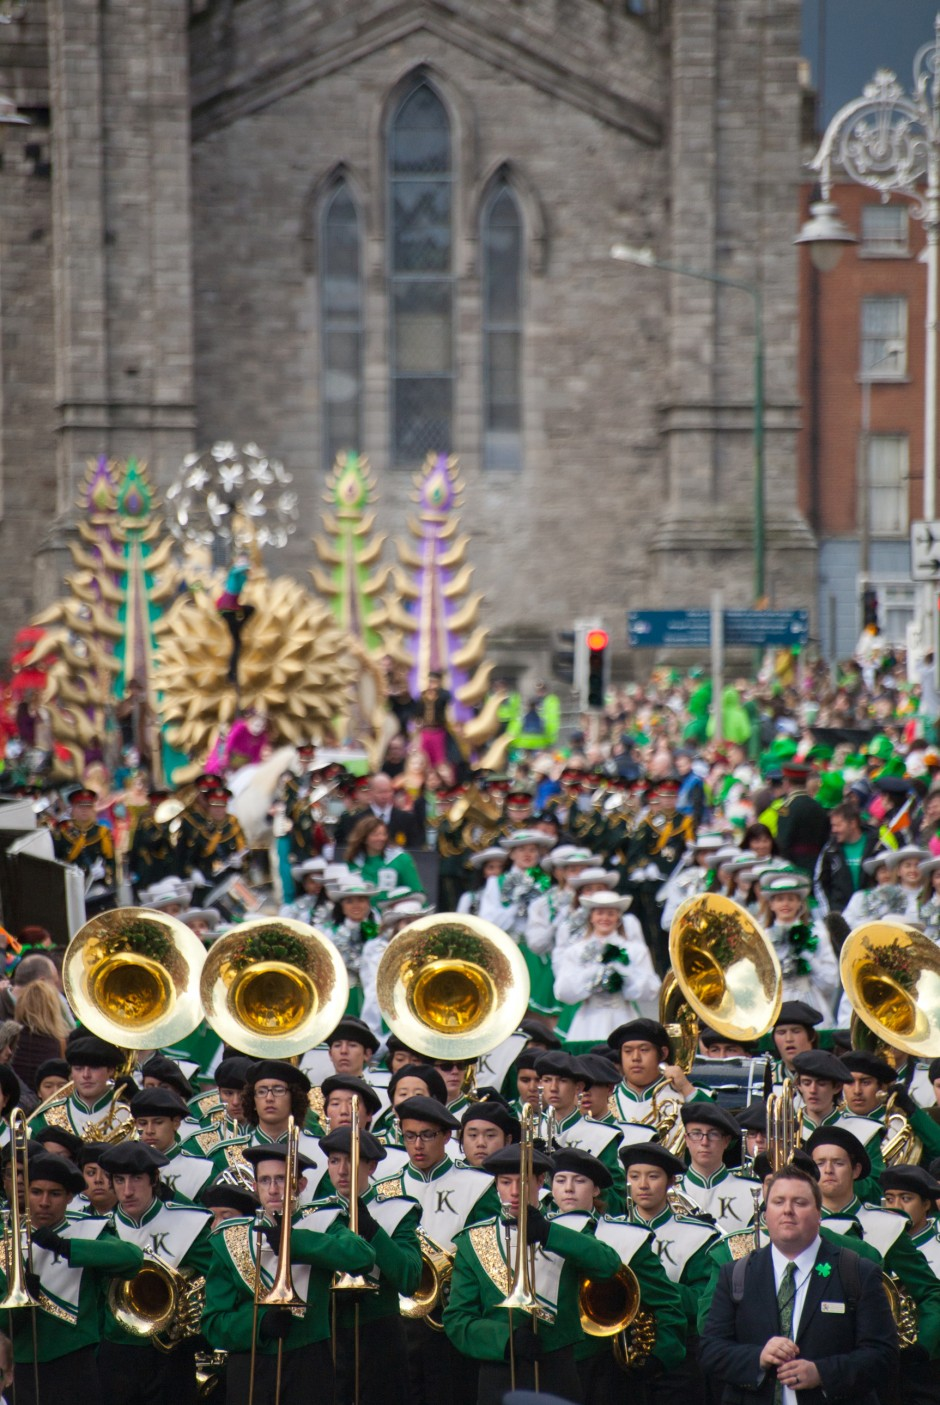 Marching band performing in St. Patrick's Day Parade